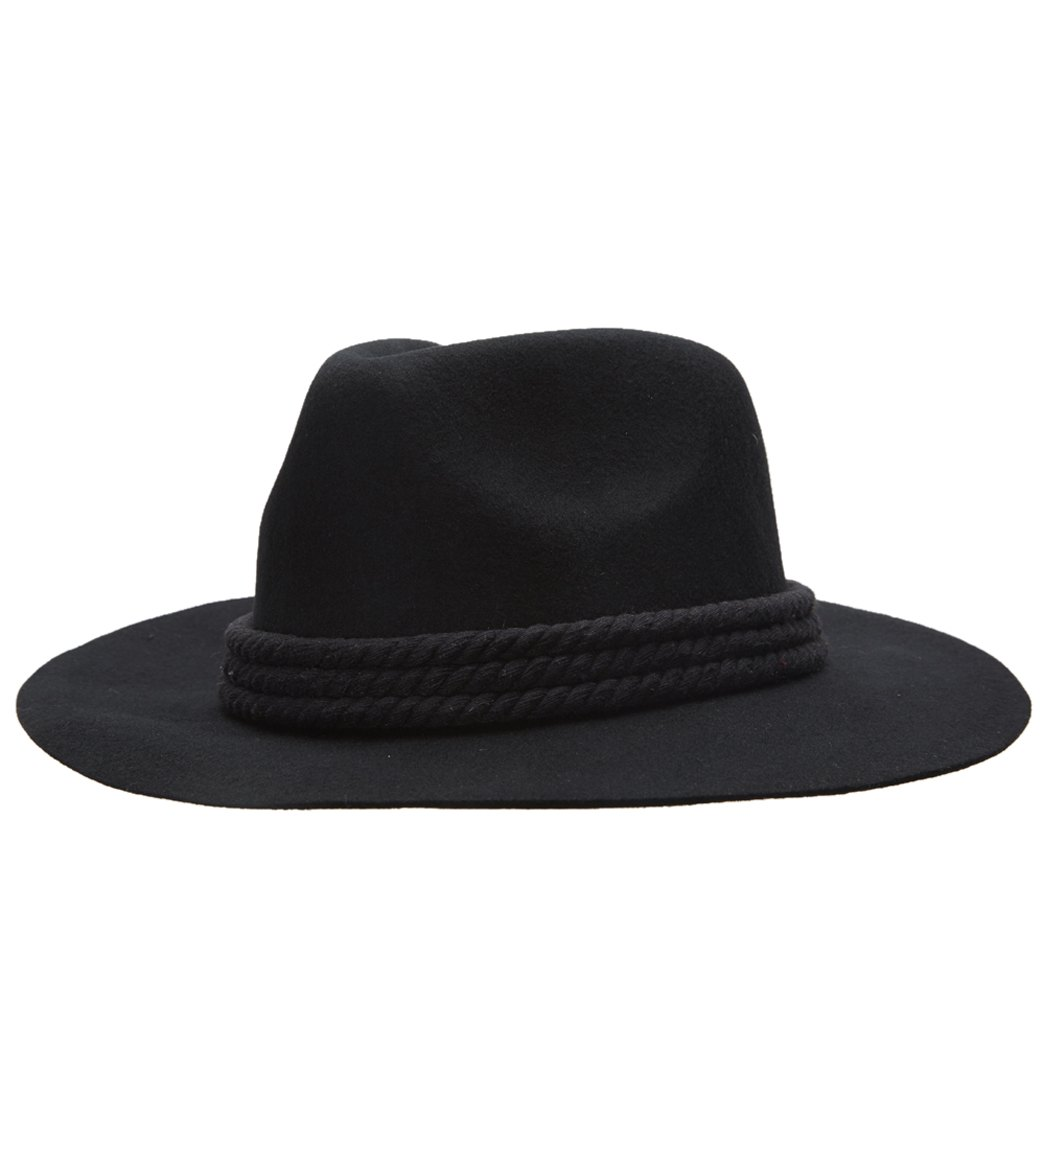 9fa5fe15caf73 Billabong Roped In Felt Hat at SwimOutlet.com